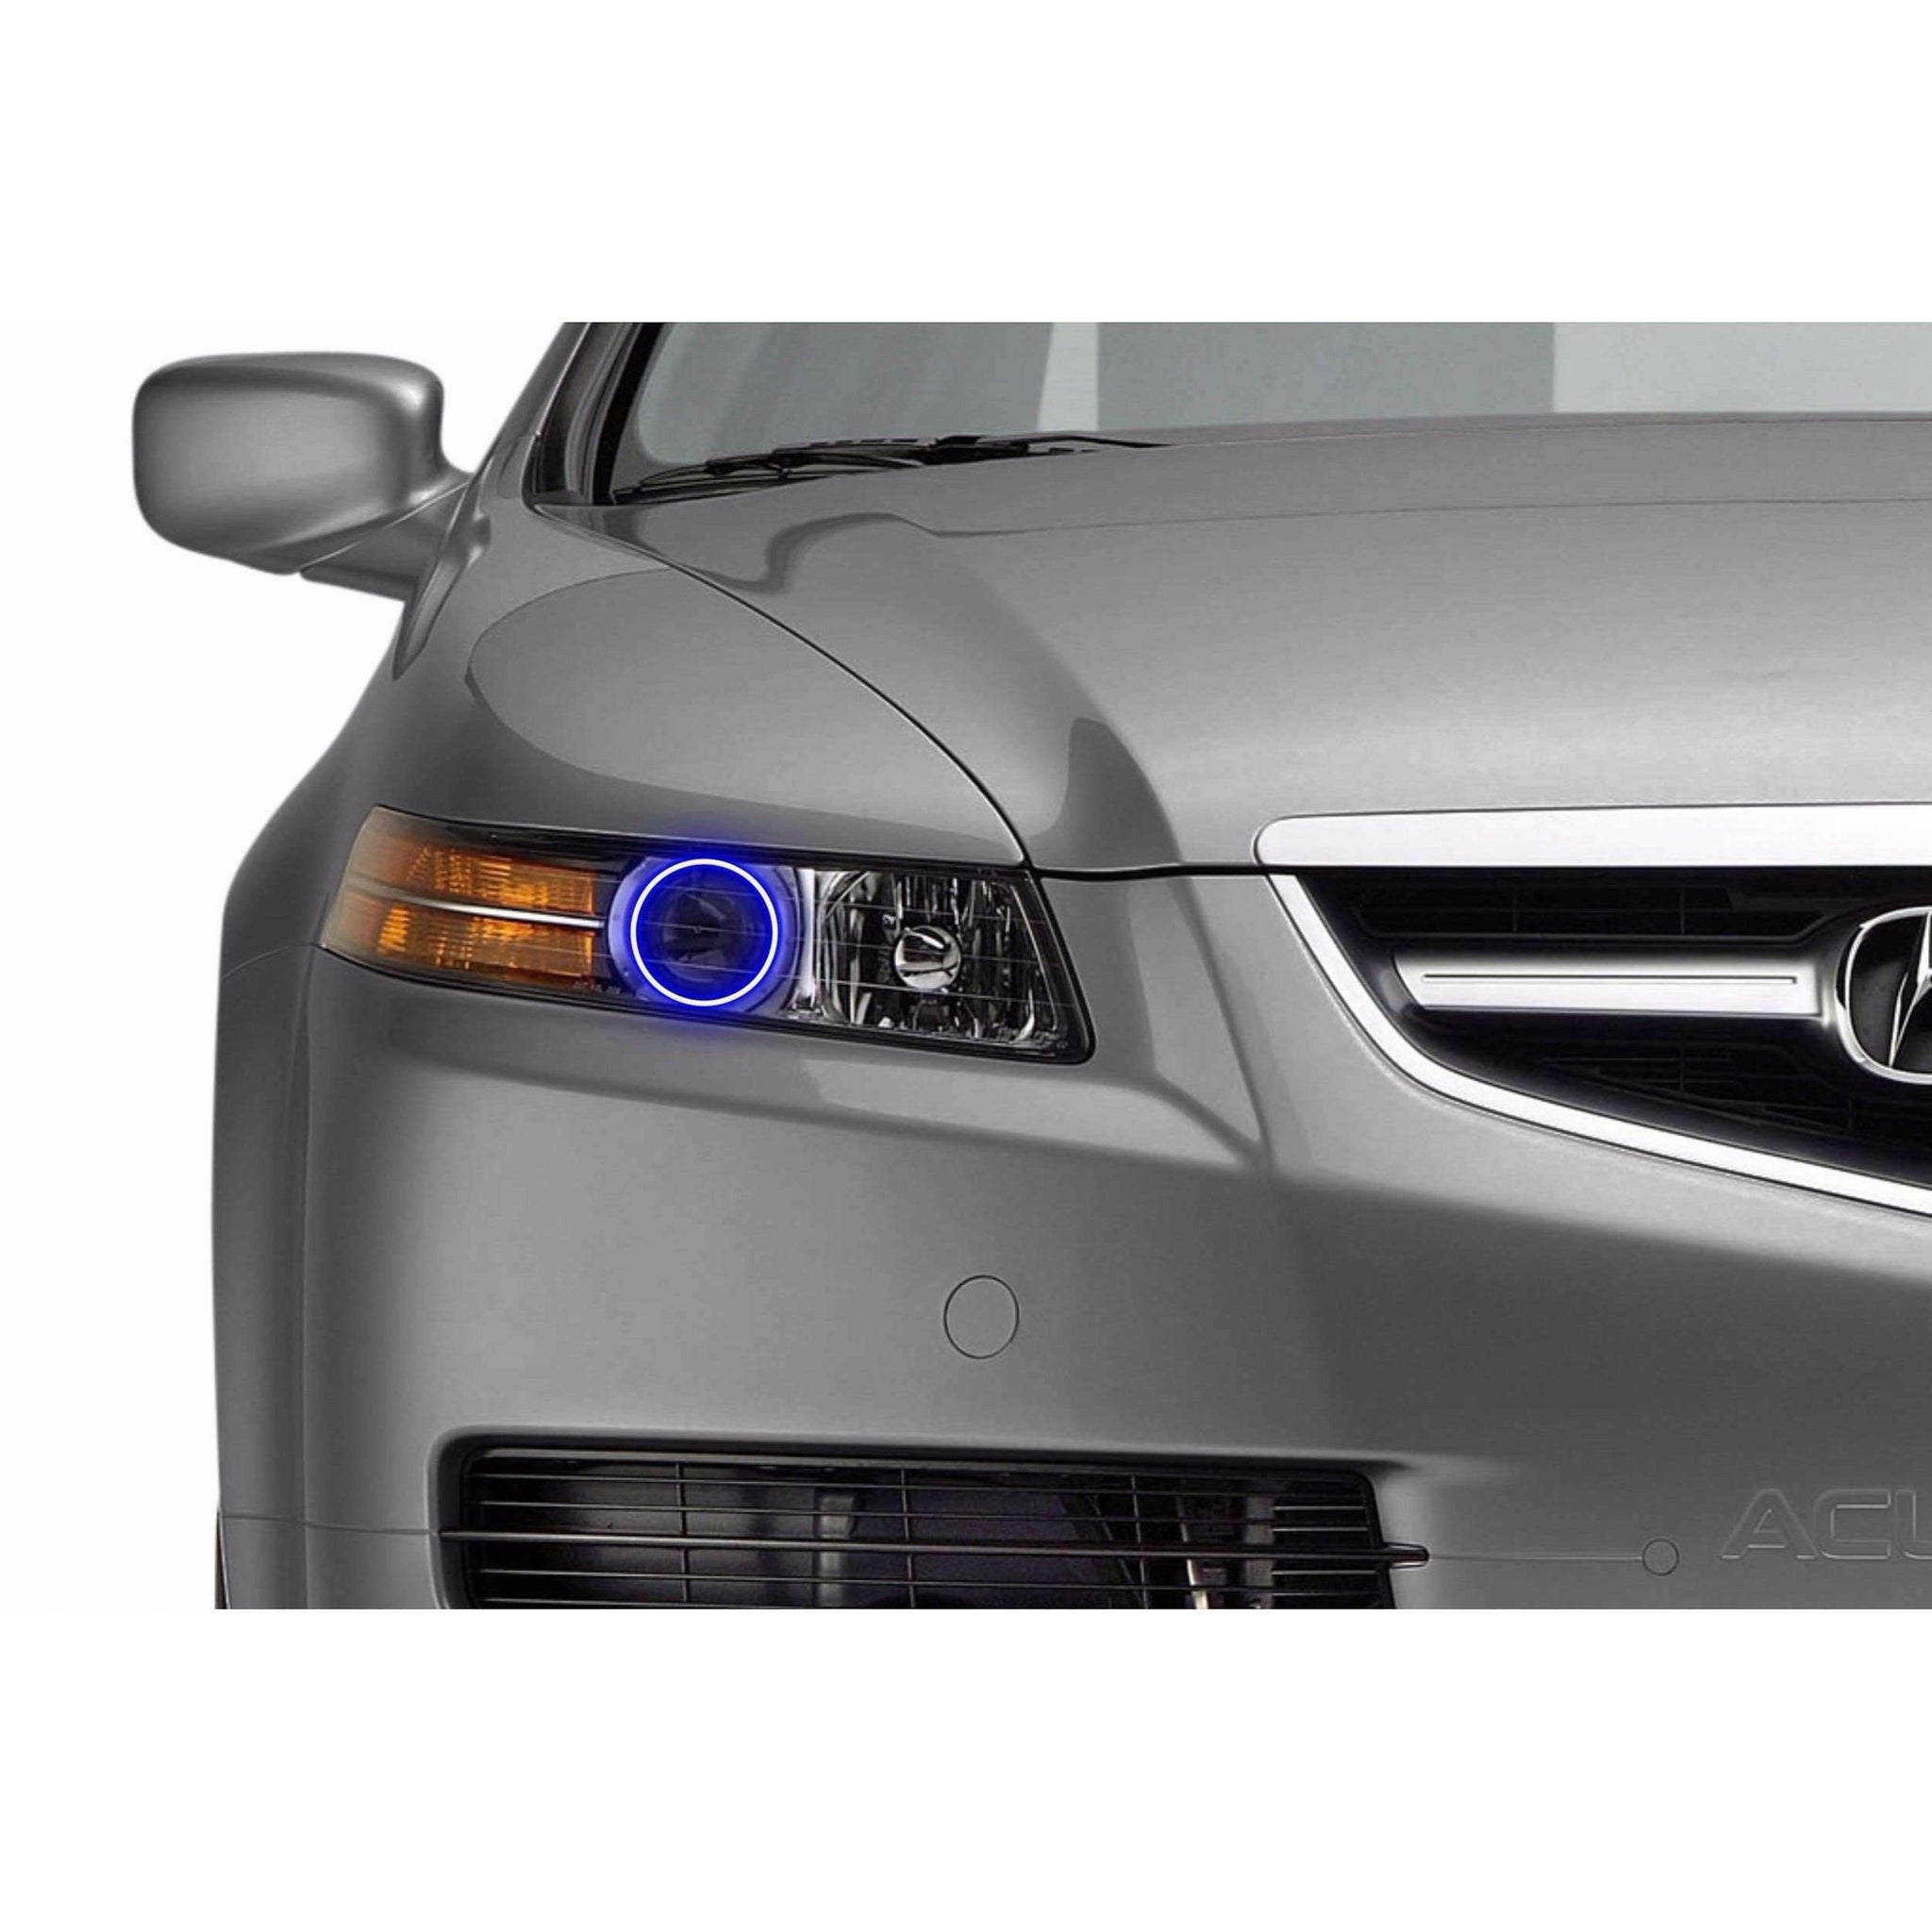 [$12.59 / Month] 2004-2008 Acura TL Profile Prism